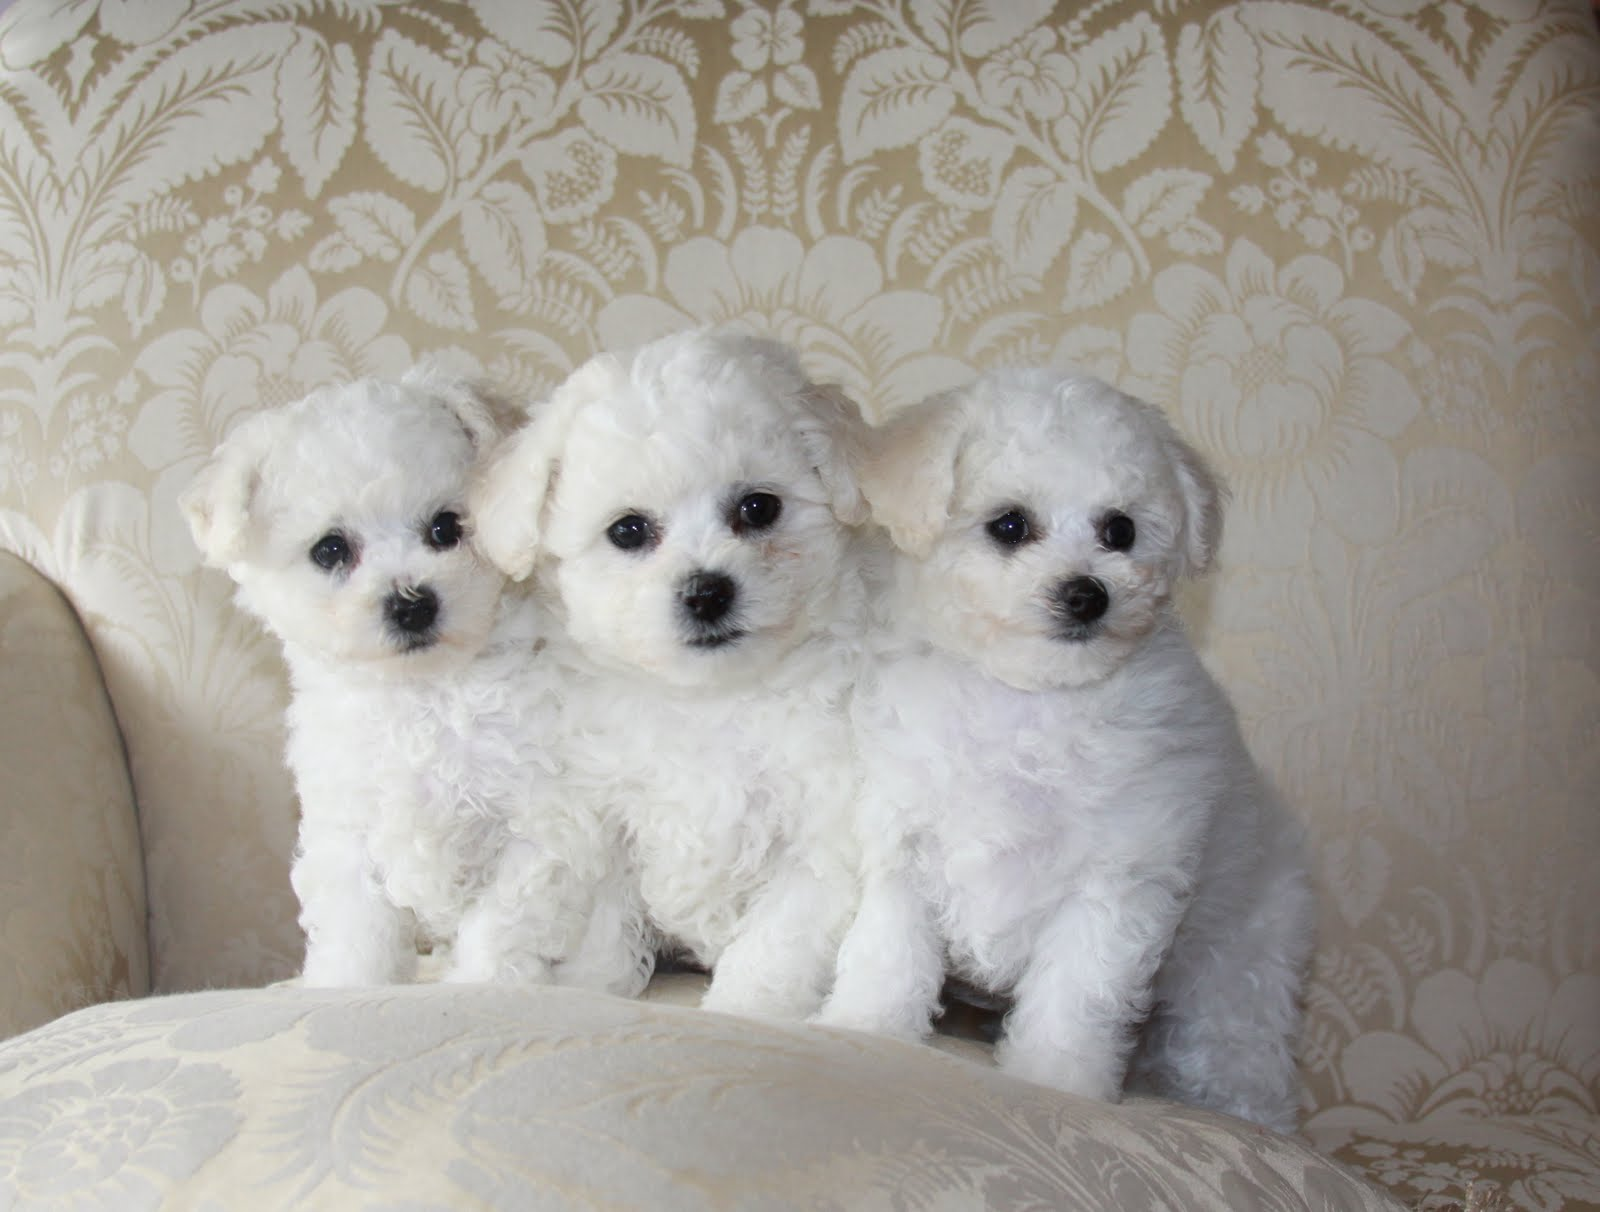 Bichon frise puppy photo